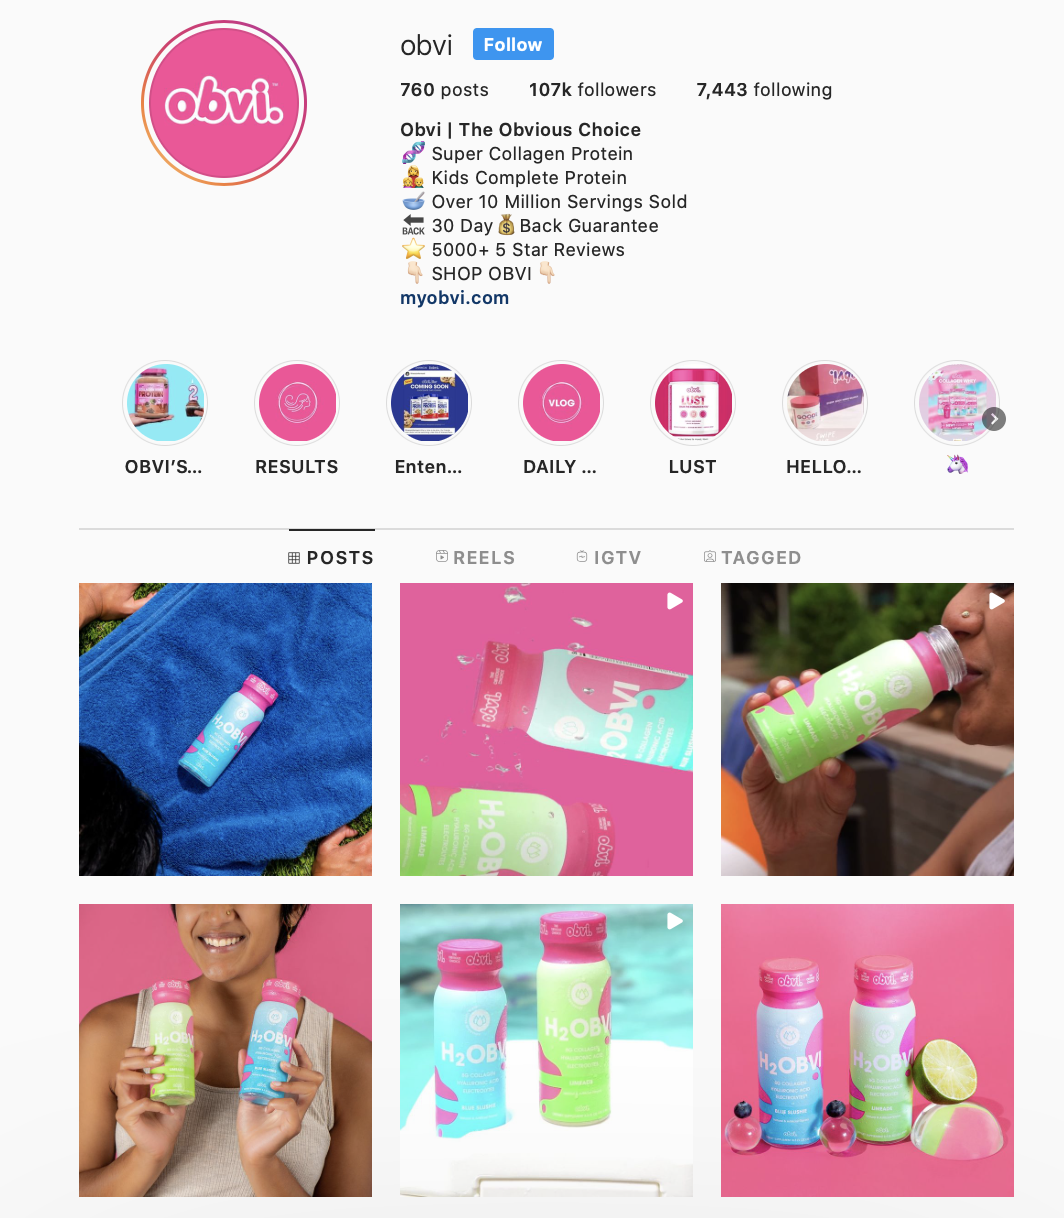 @Obvi incorporates its bright brand colors into its Instagram account via its profile picture, feed posts, and Story highlight covers.